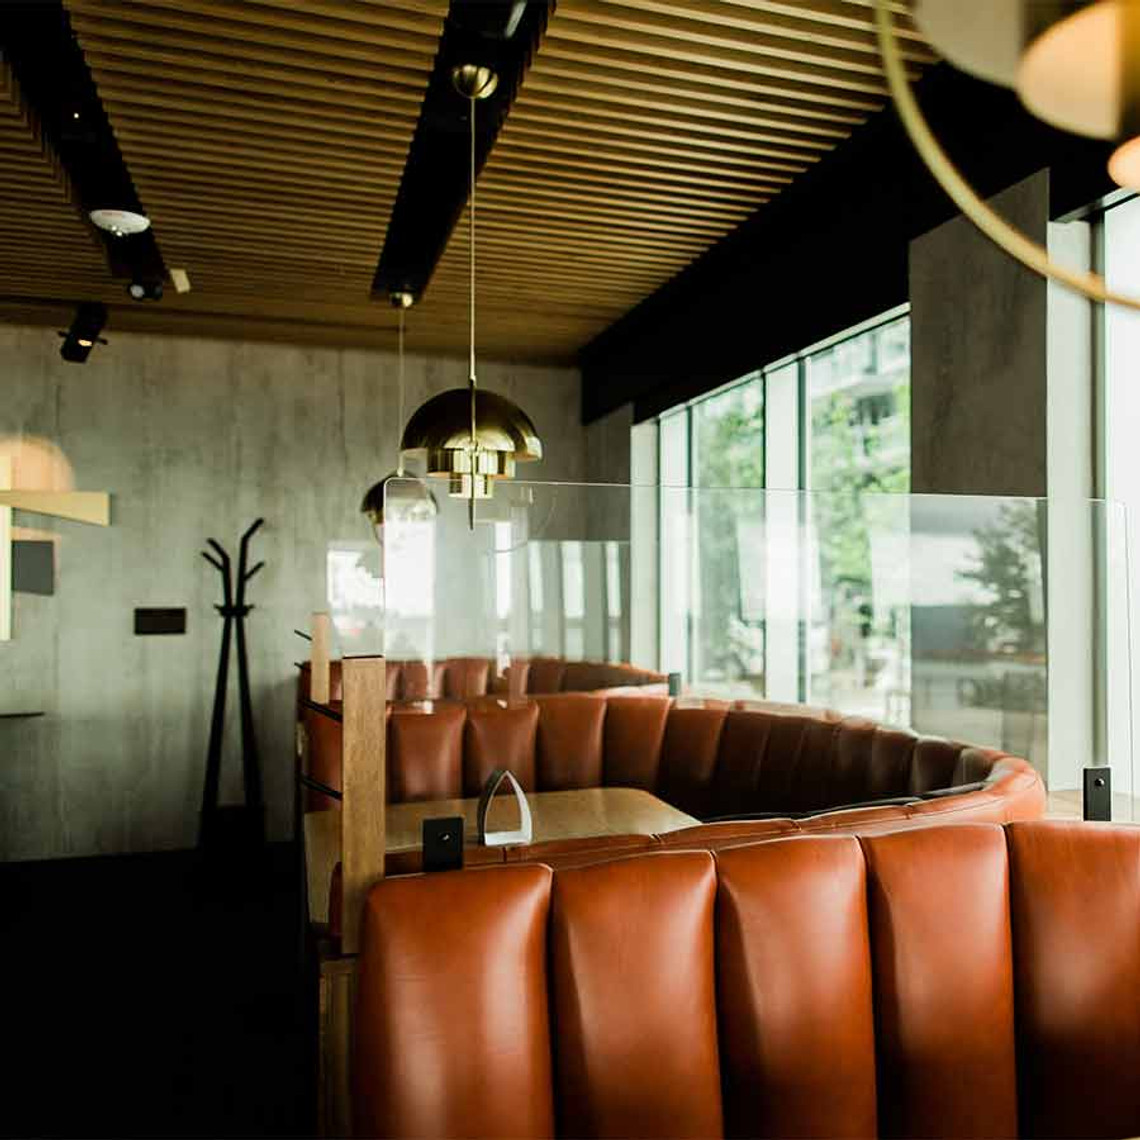 PlexiShield restaurant booth divider separating two standard 1/2 circle booths.